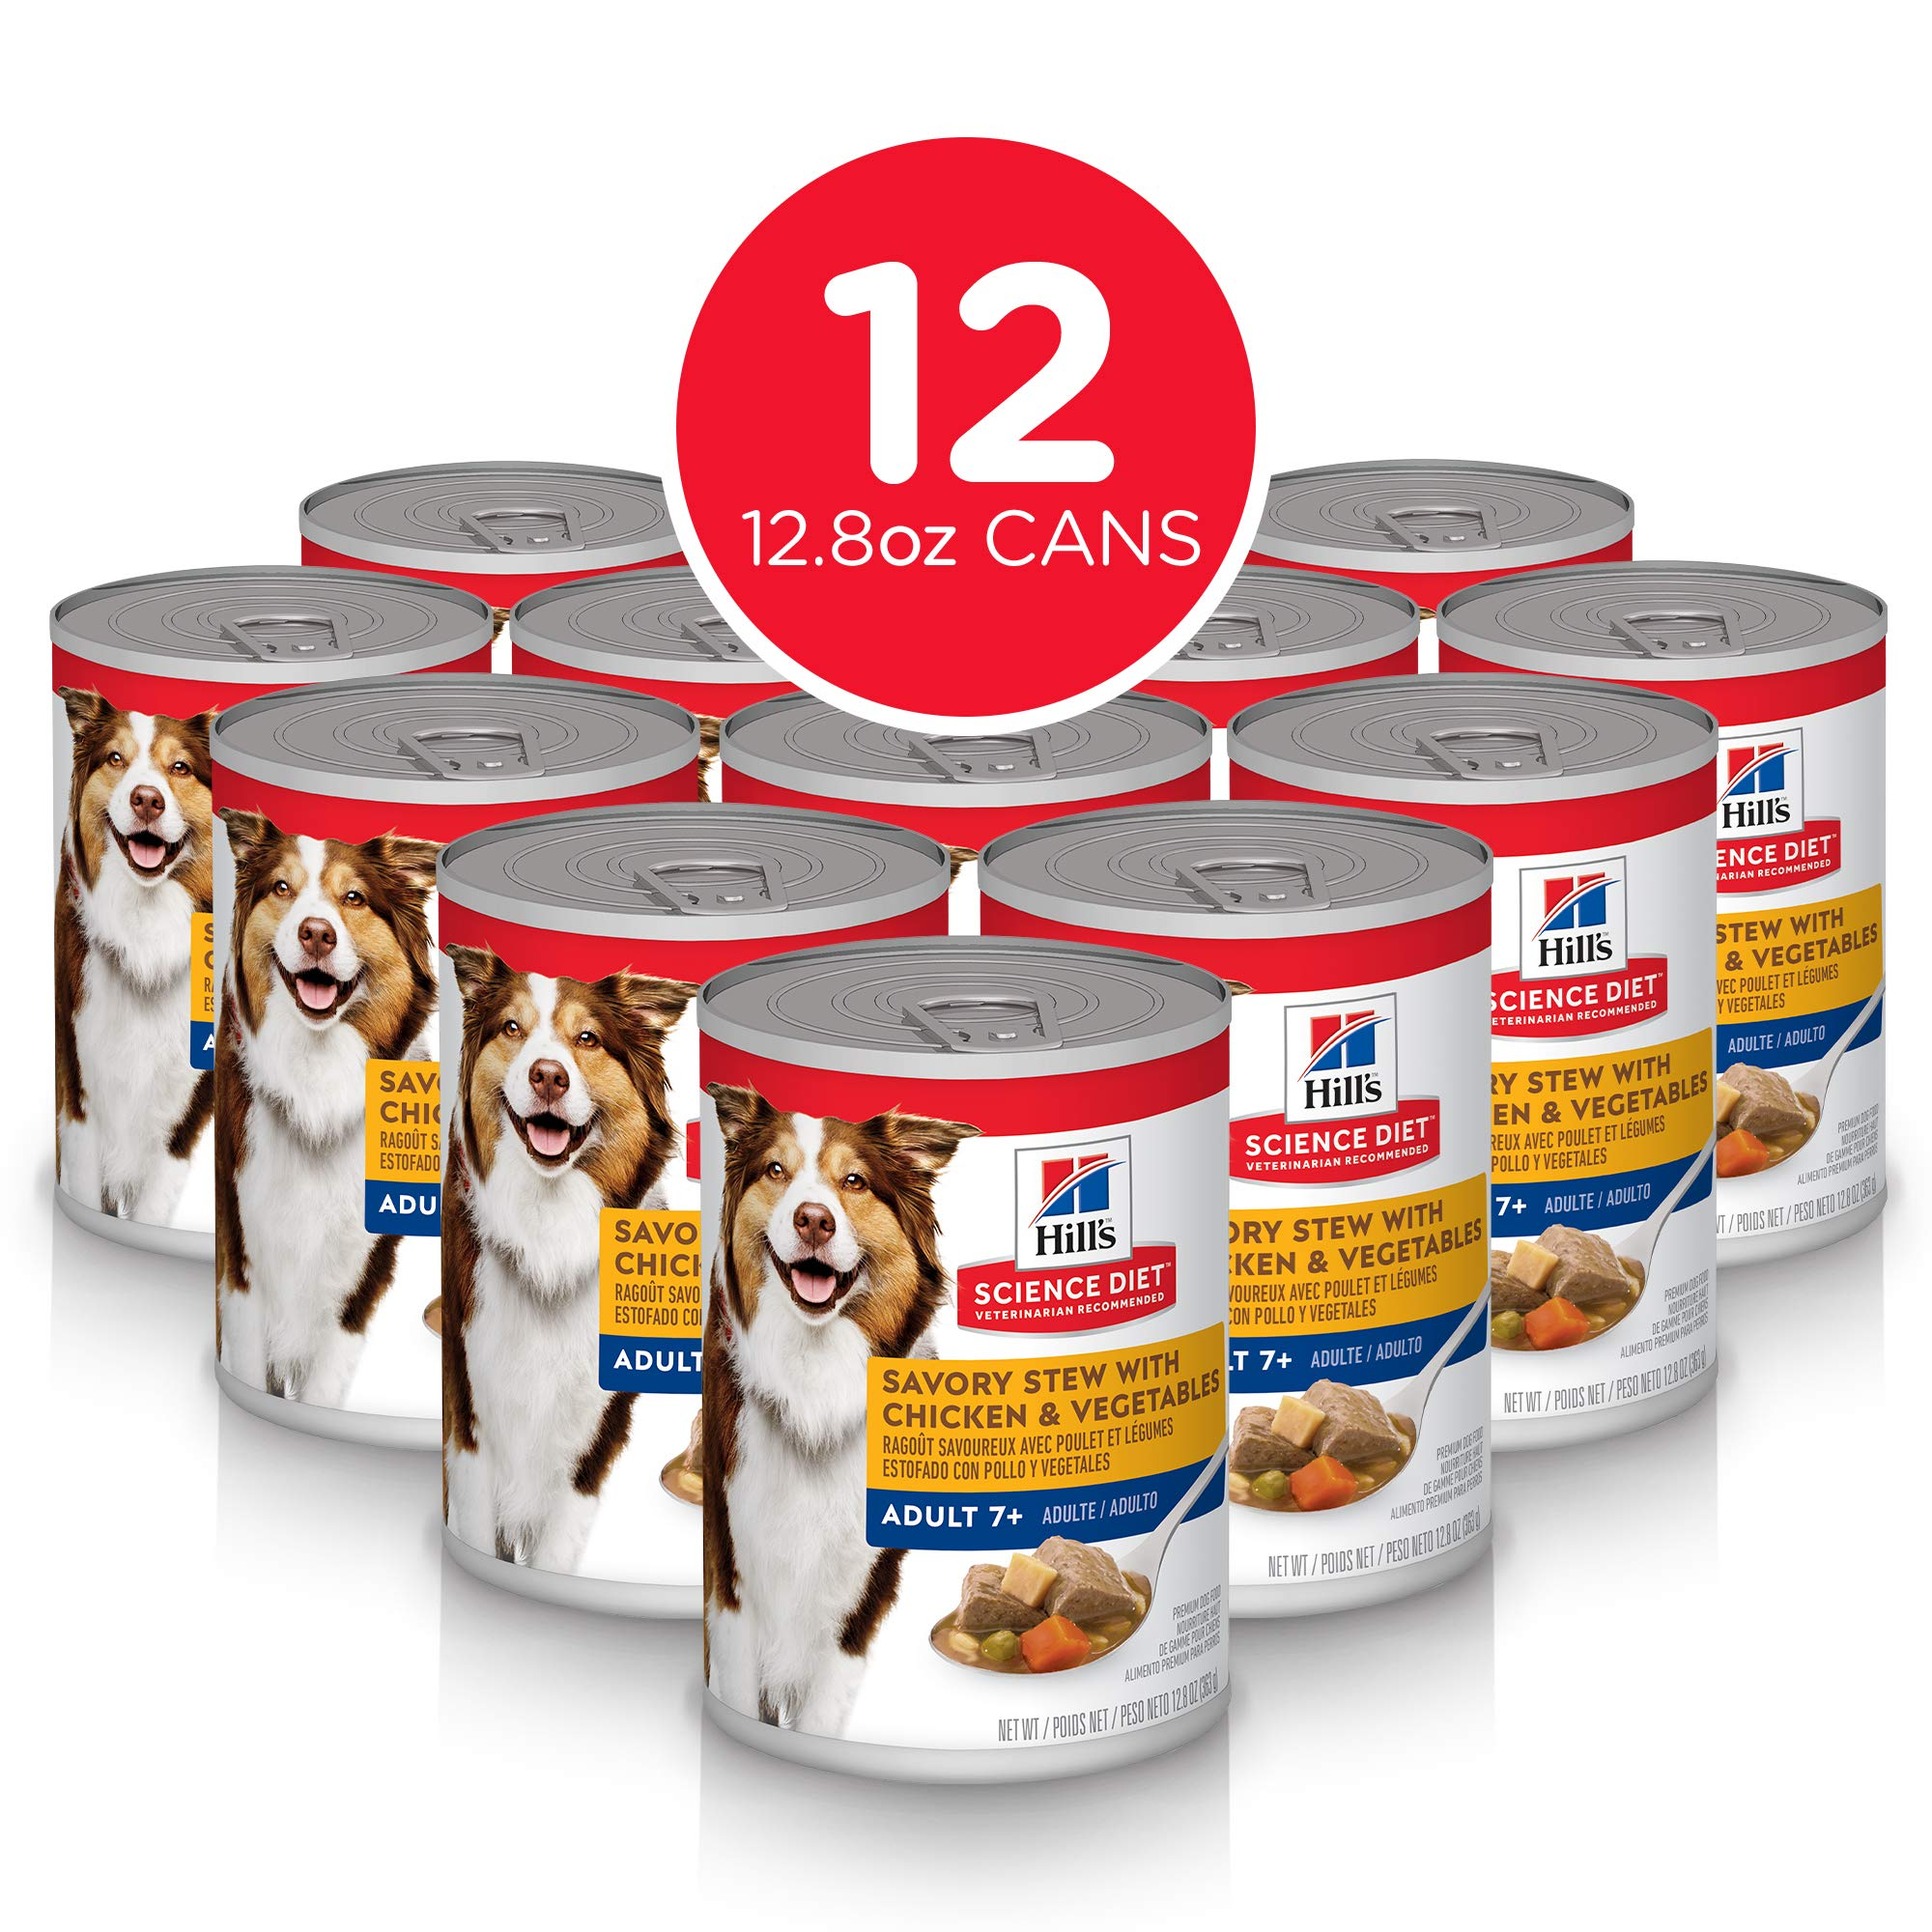 Hill's Science Diet Wet Dog Food, Adult 7+ for Senior Dogs,  13 oz Cans, 12 Pack by Hill's Science Diet